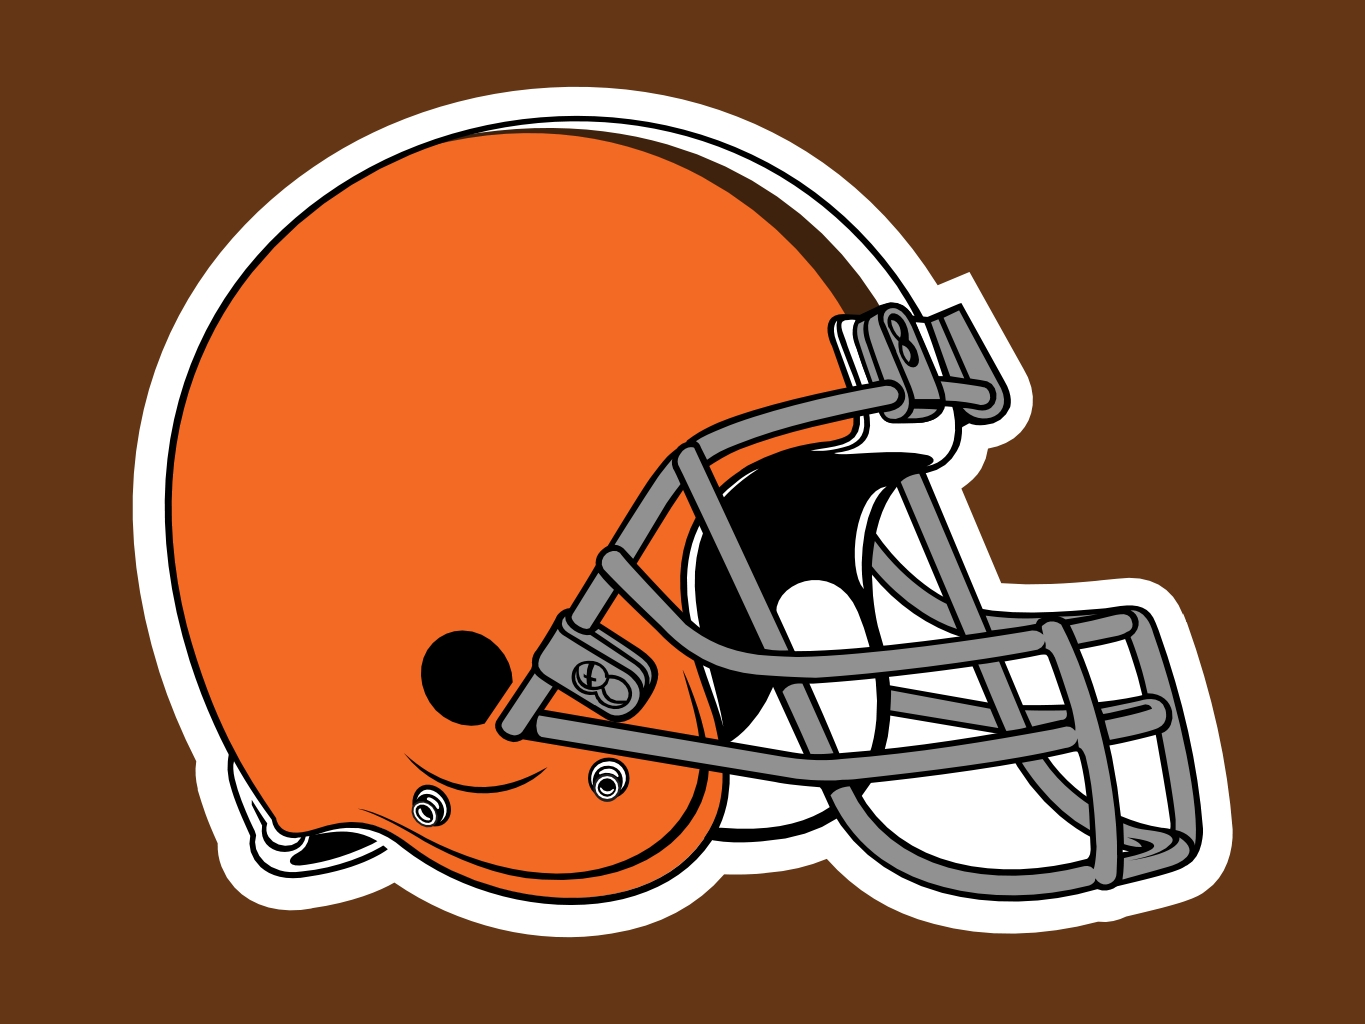 NFL Team Logos   Photo 91 of 416 phombocom 1365x1024